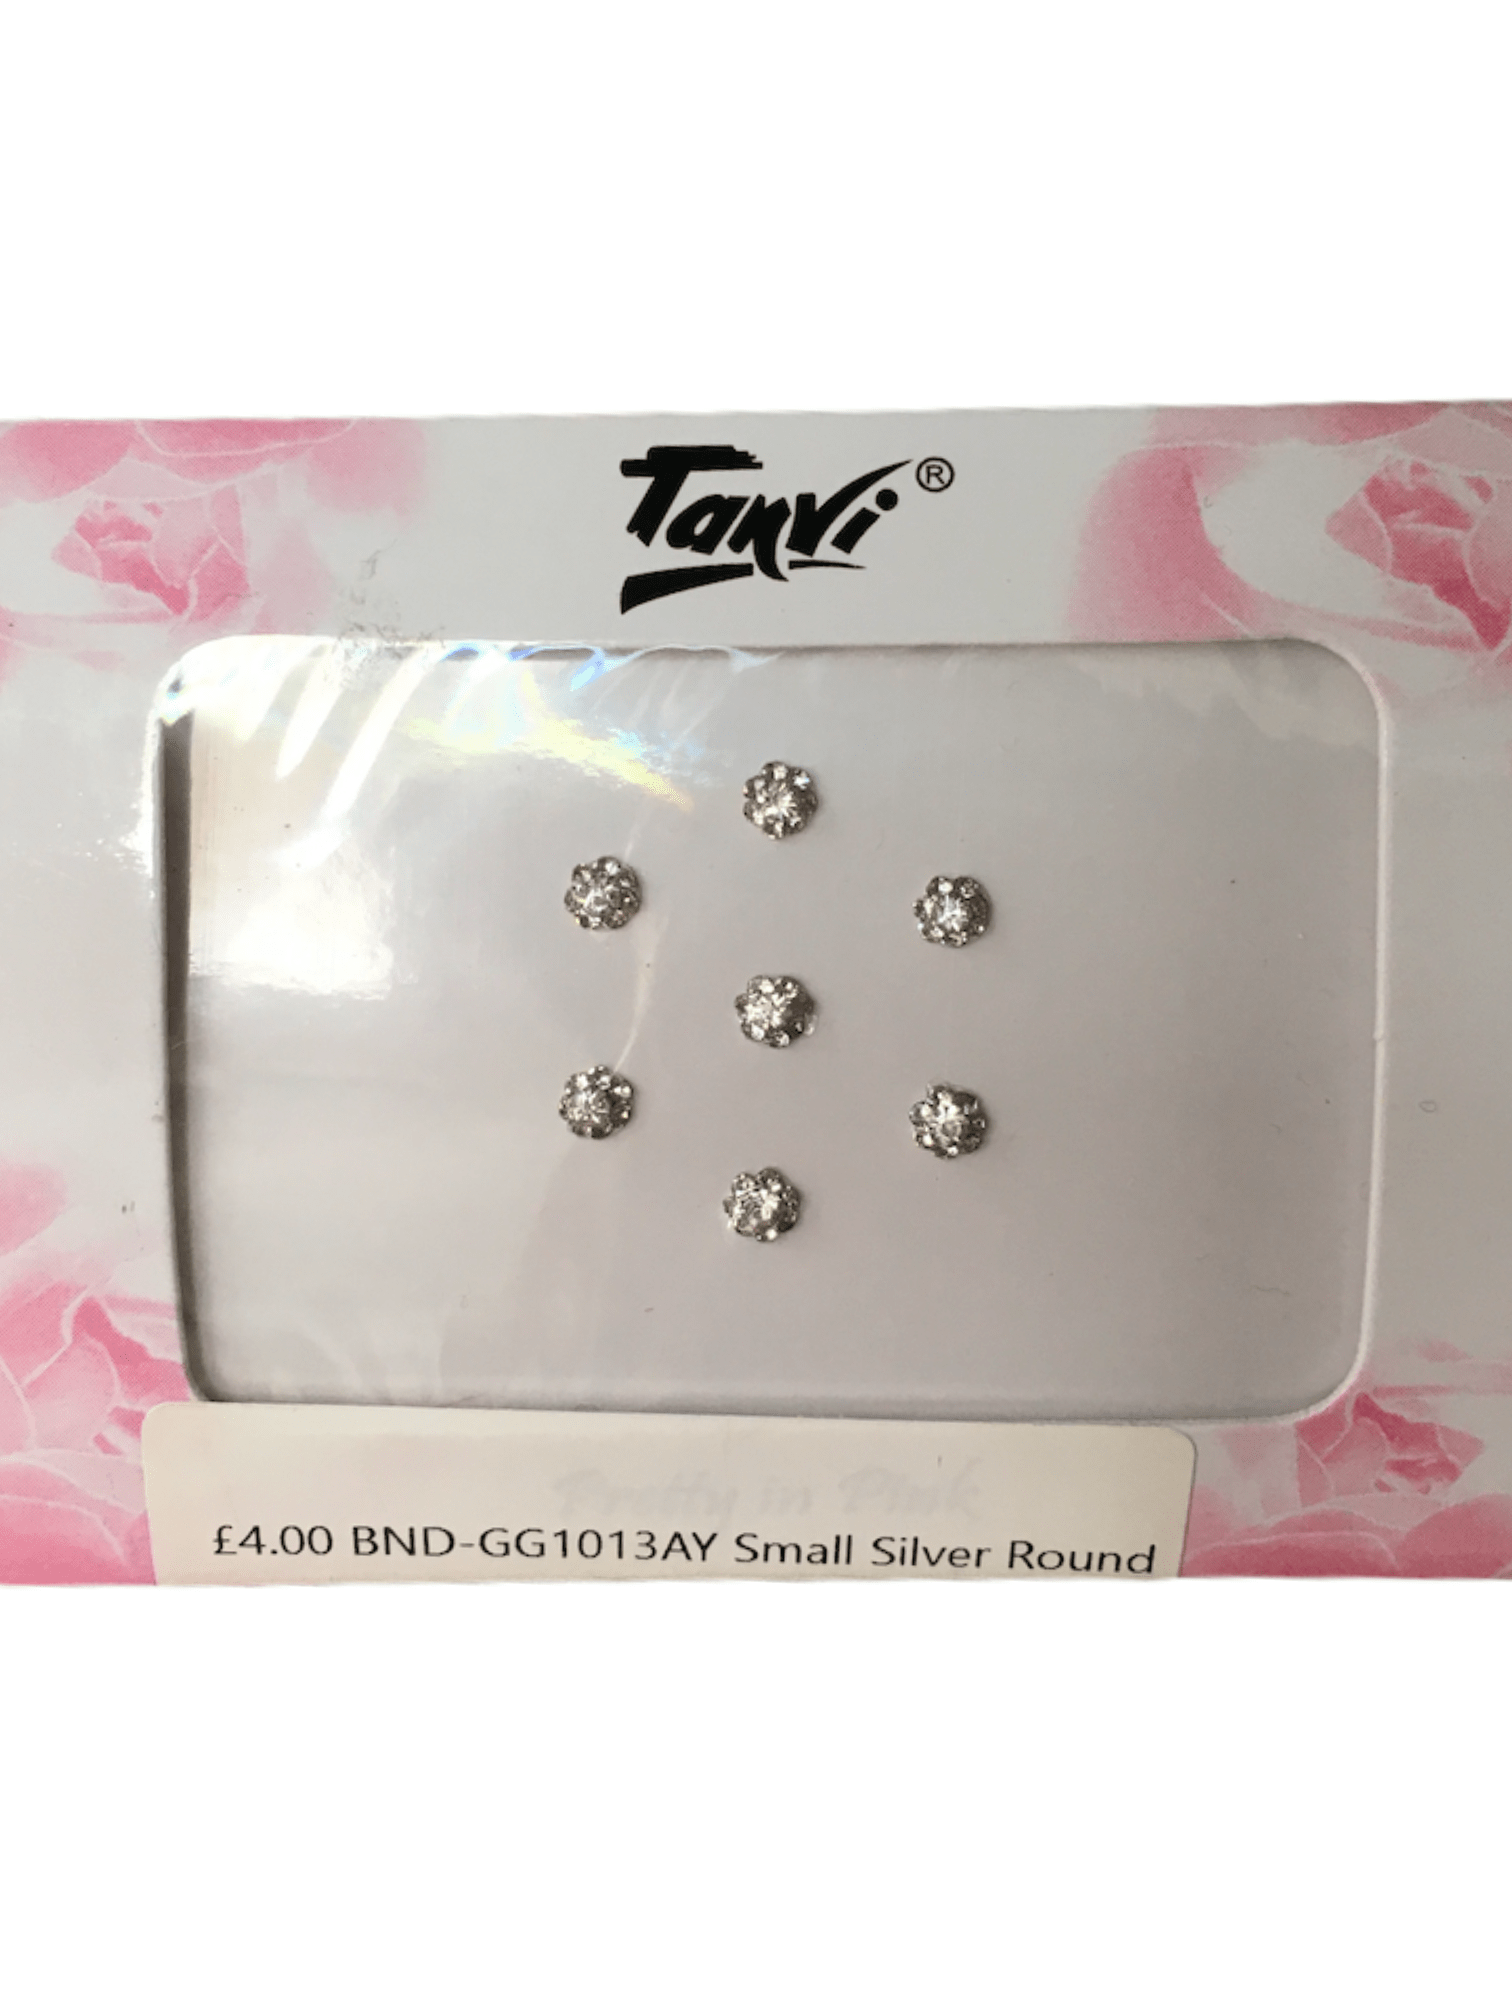 Pack of 7 round Silver stone Bindi gg1013 - Prachy Creations